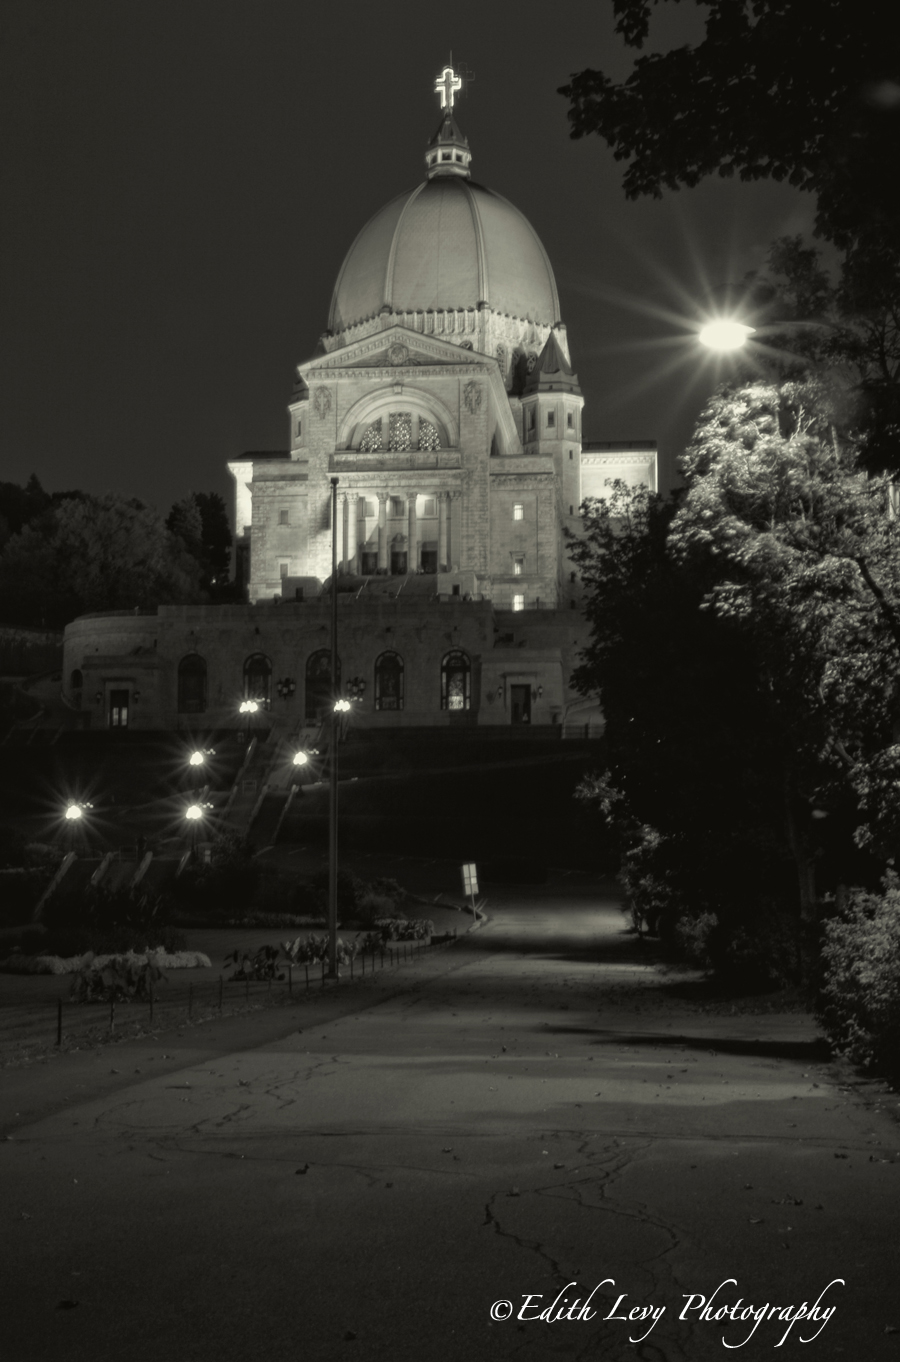 St. Joseph's Oratory in Montreal. The oratory's dome is the third largest in the world after the Basilica of Our Lady of Peace...